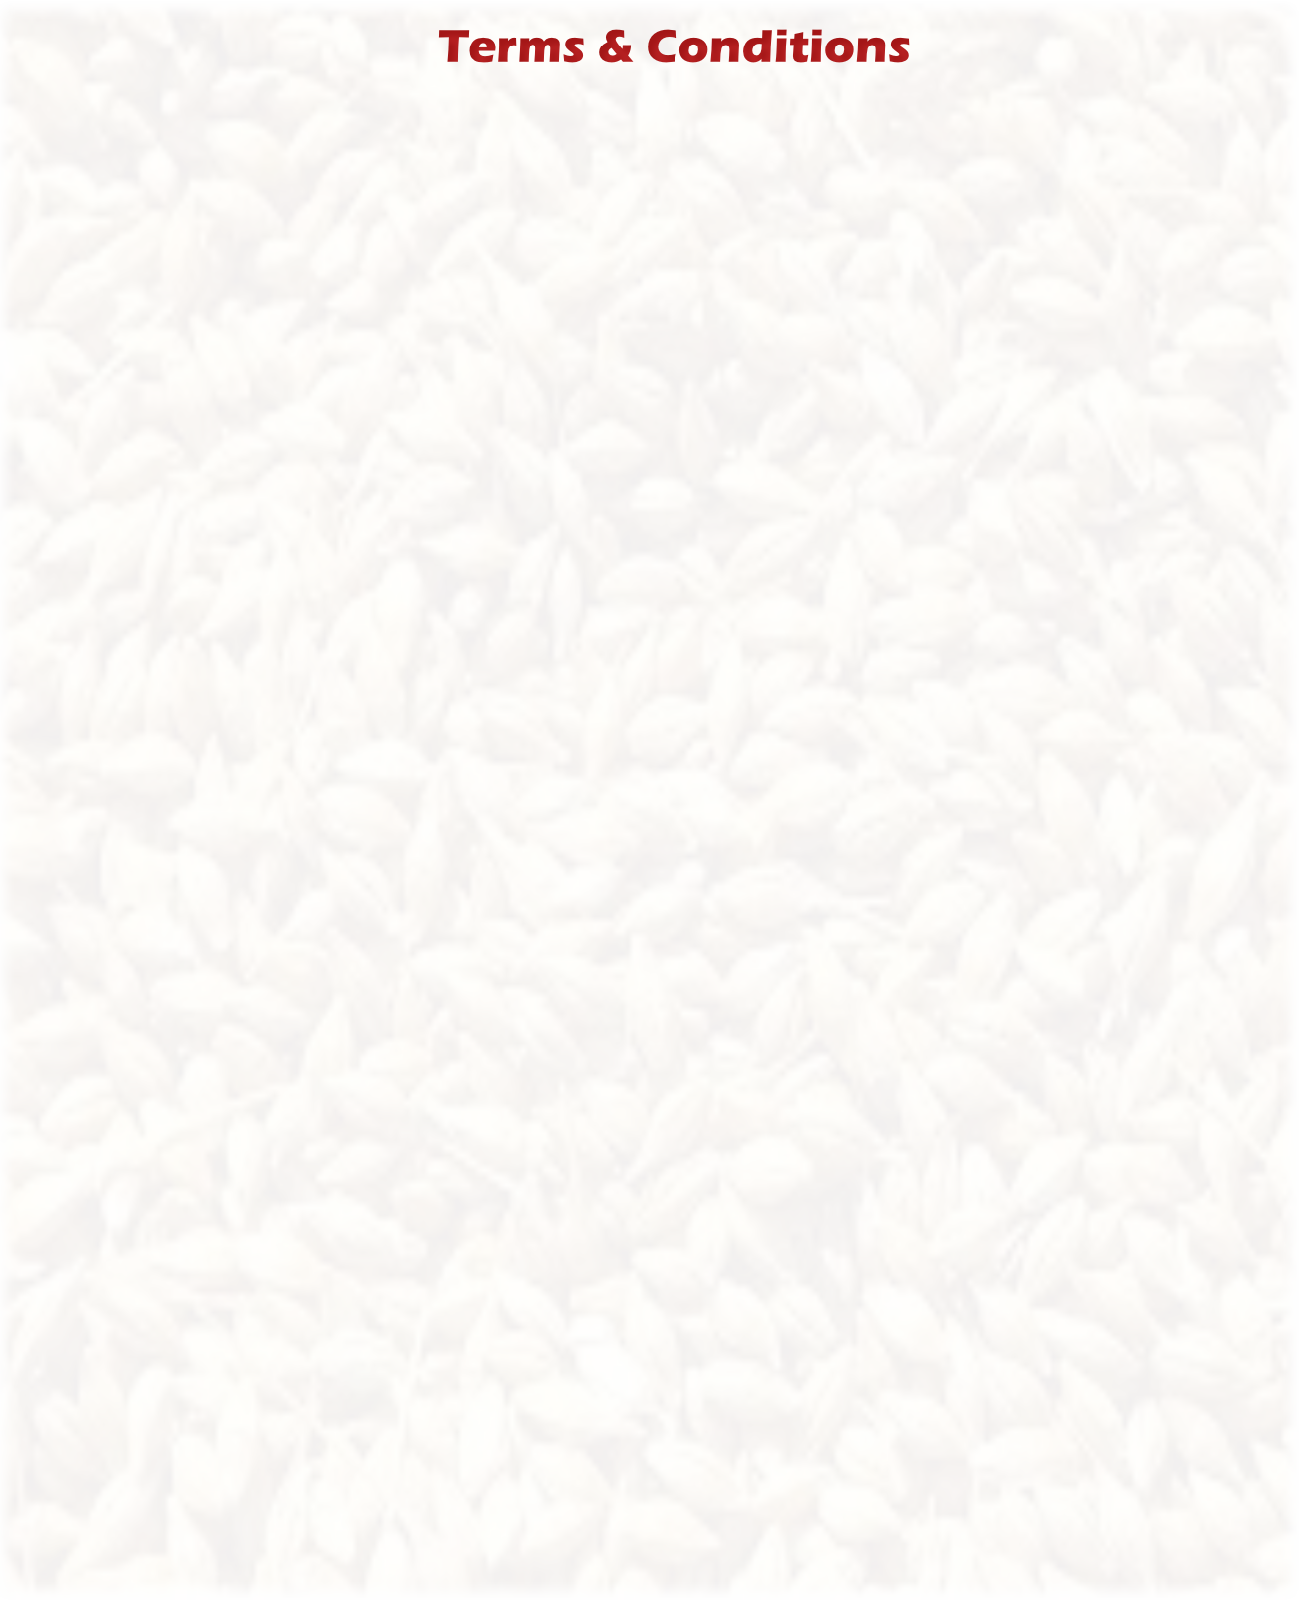 Grain texture png. Esma terms and conditions